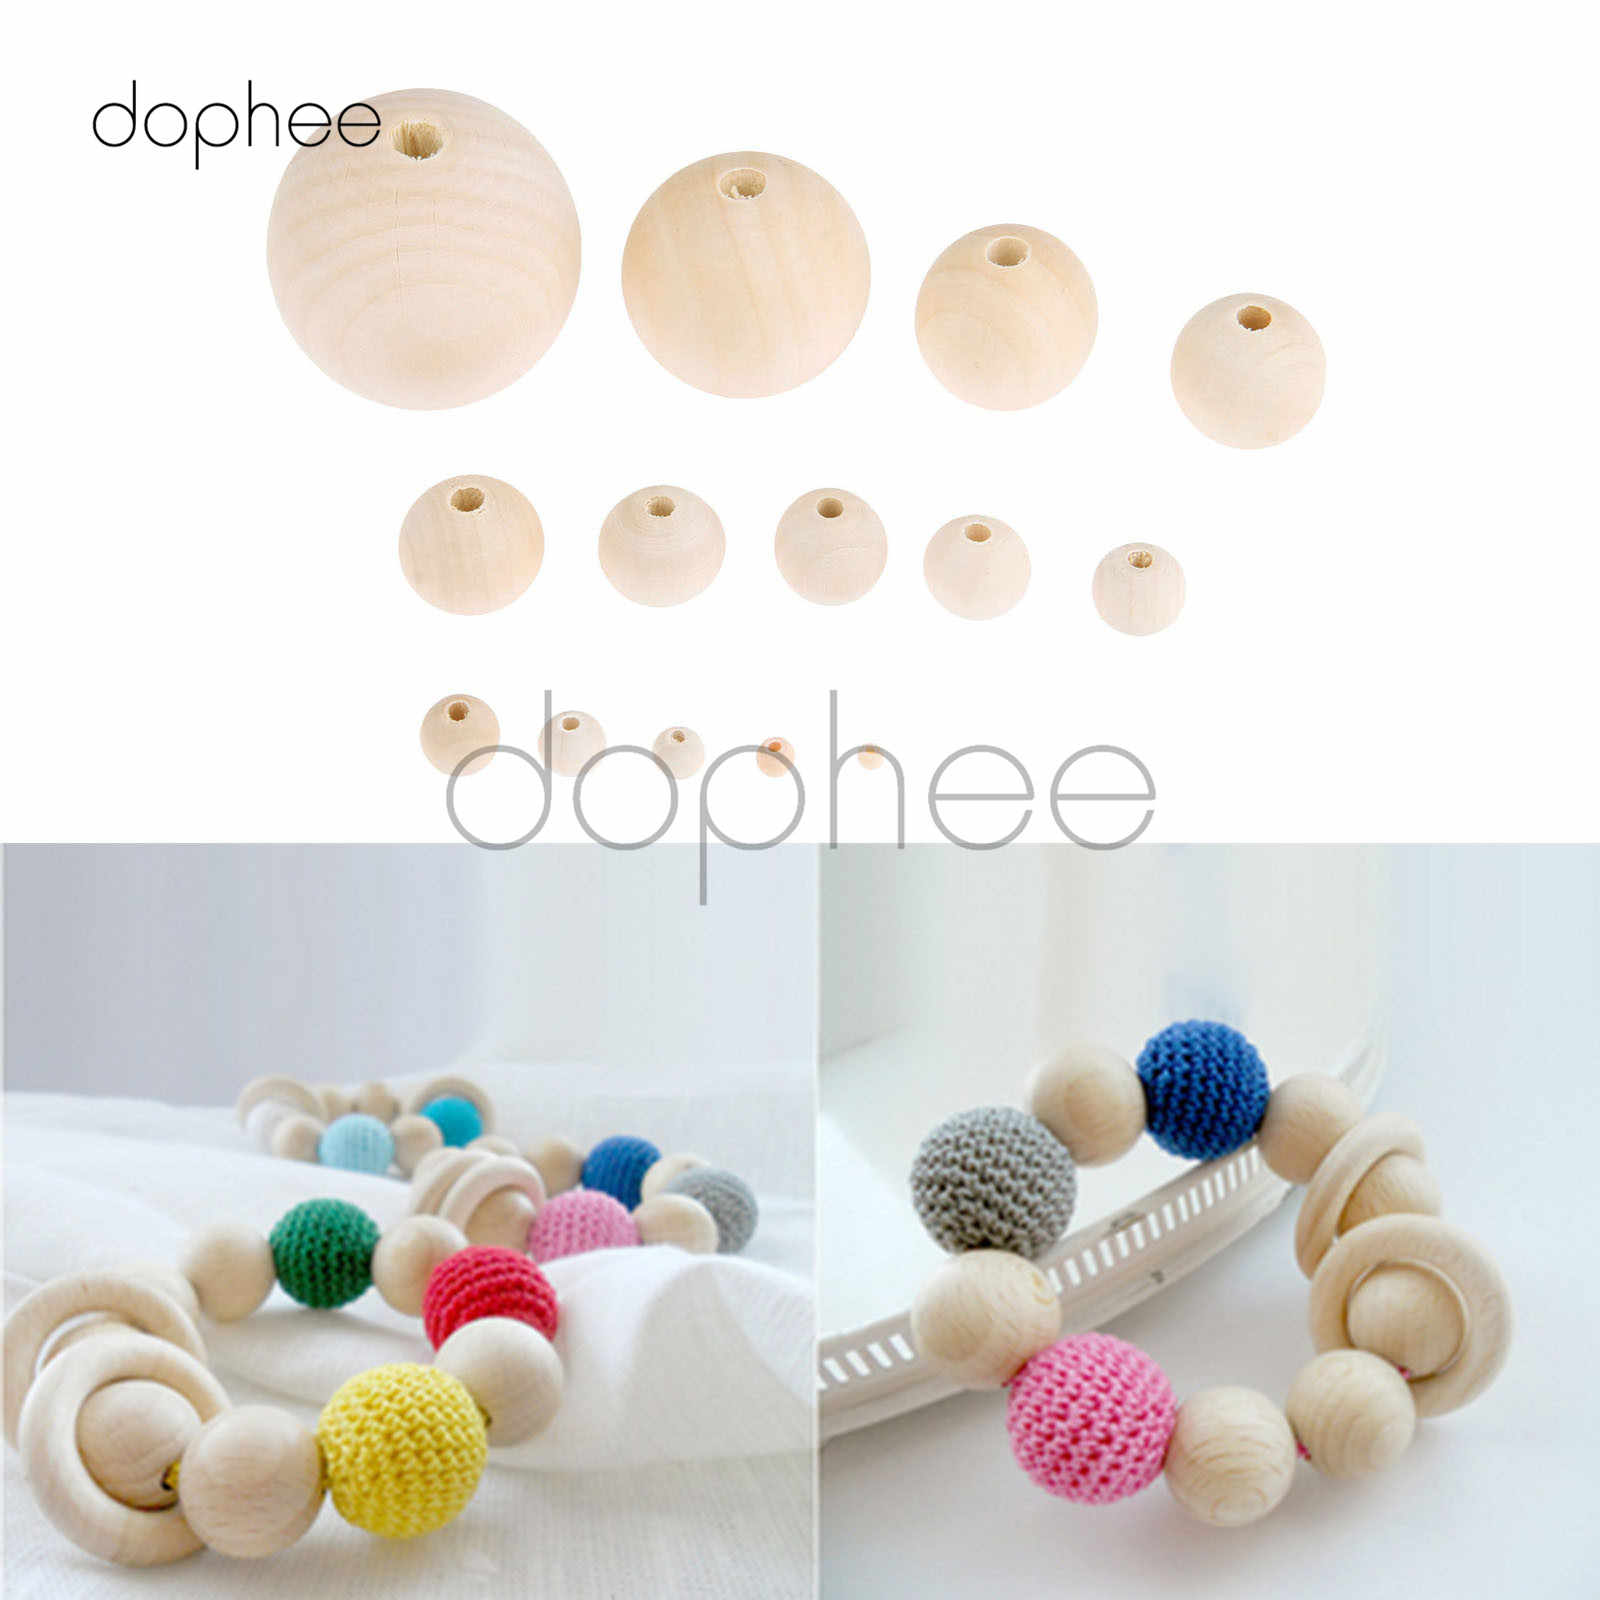 dophee 50-600pcs Multi-Size Natural Wooden Beads Round Eco-Friendly For Artwork Necklace Making Garment Decorations Accessories